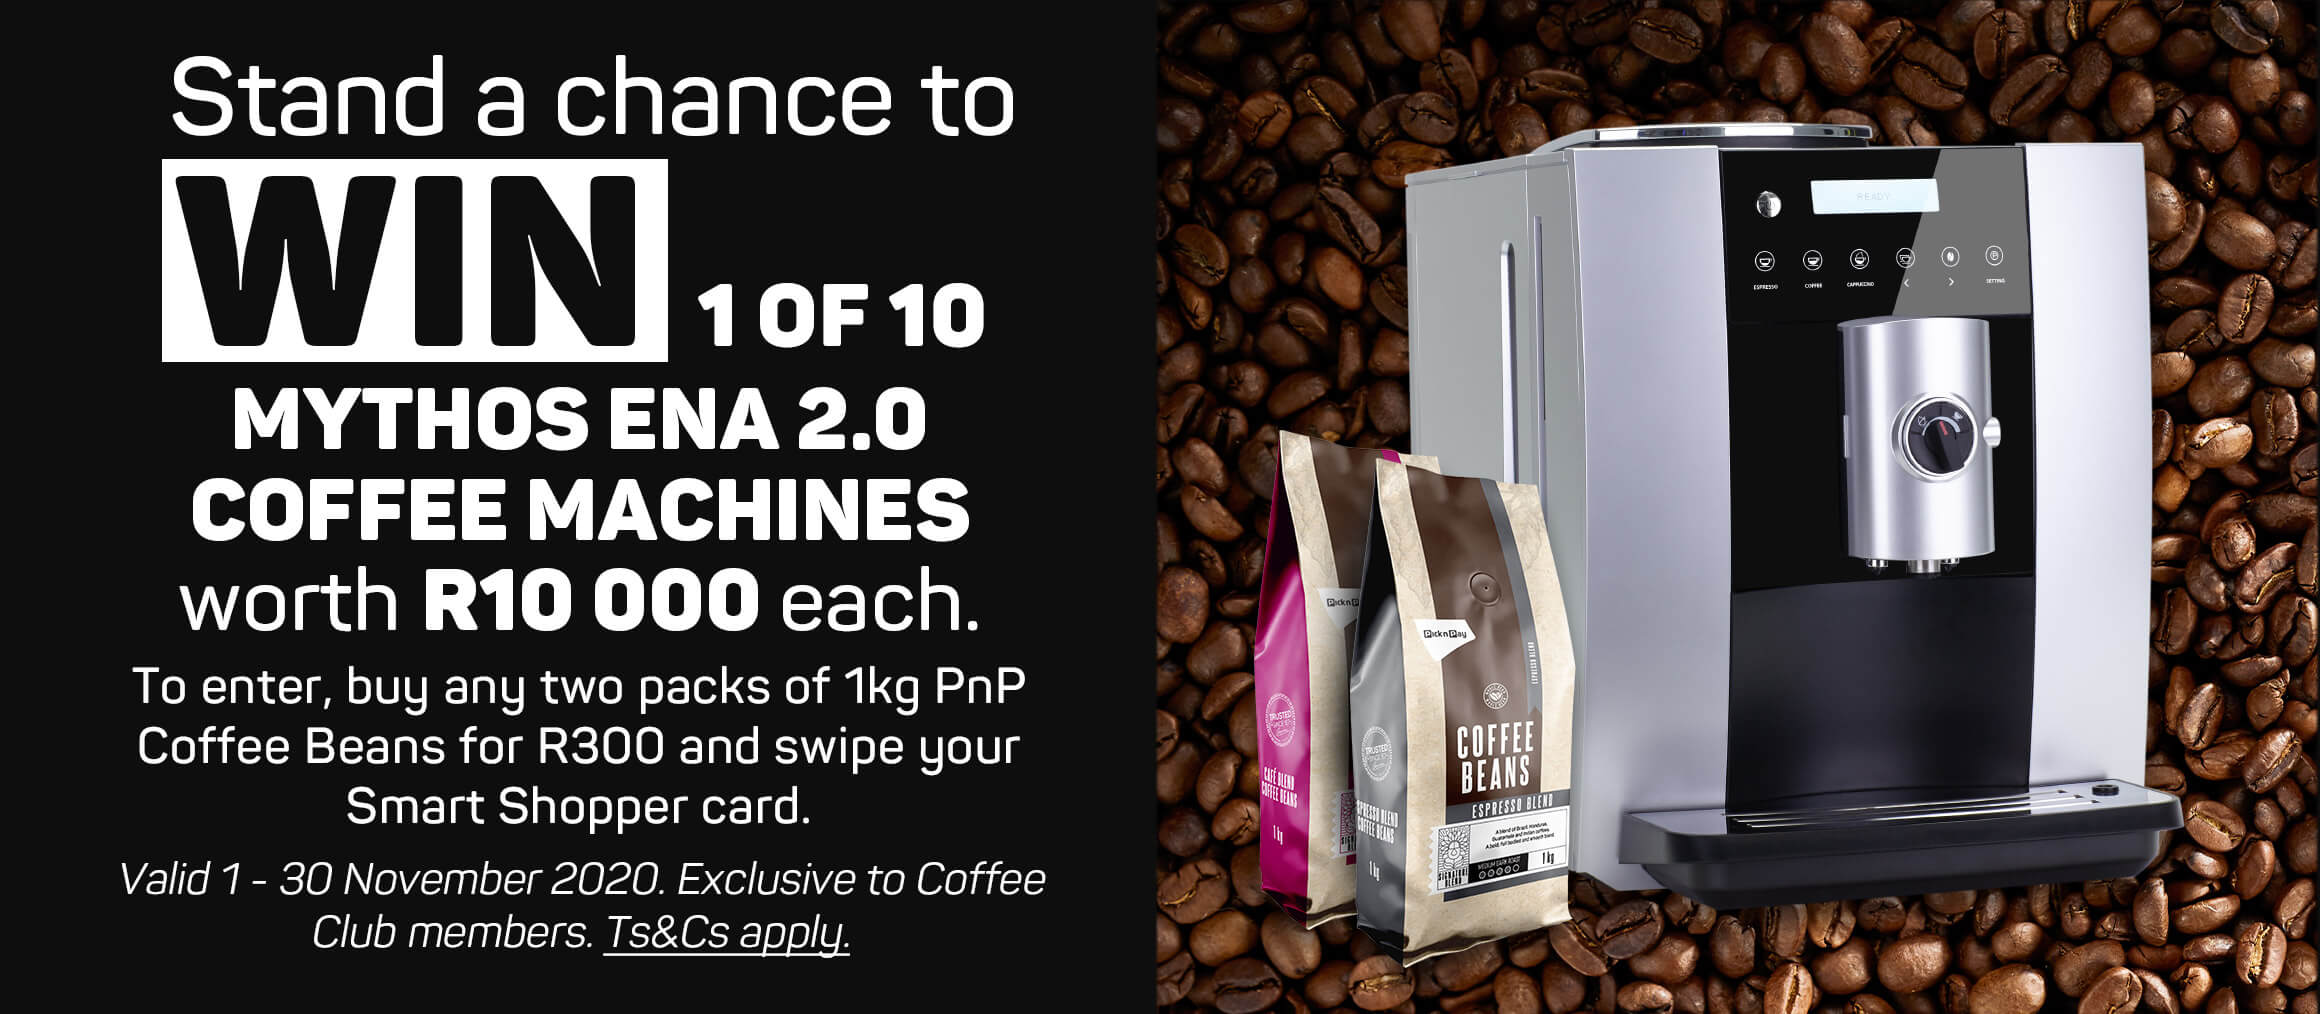 Stand a chance to win 1 of 10 Mythos Ena 2.0 coffee machines worth R10 000 each.